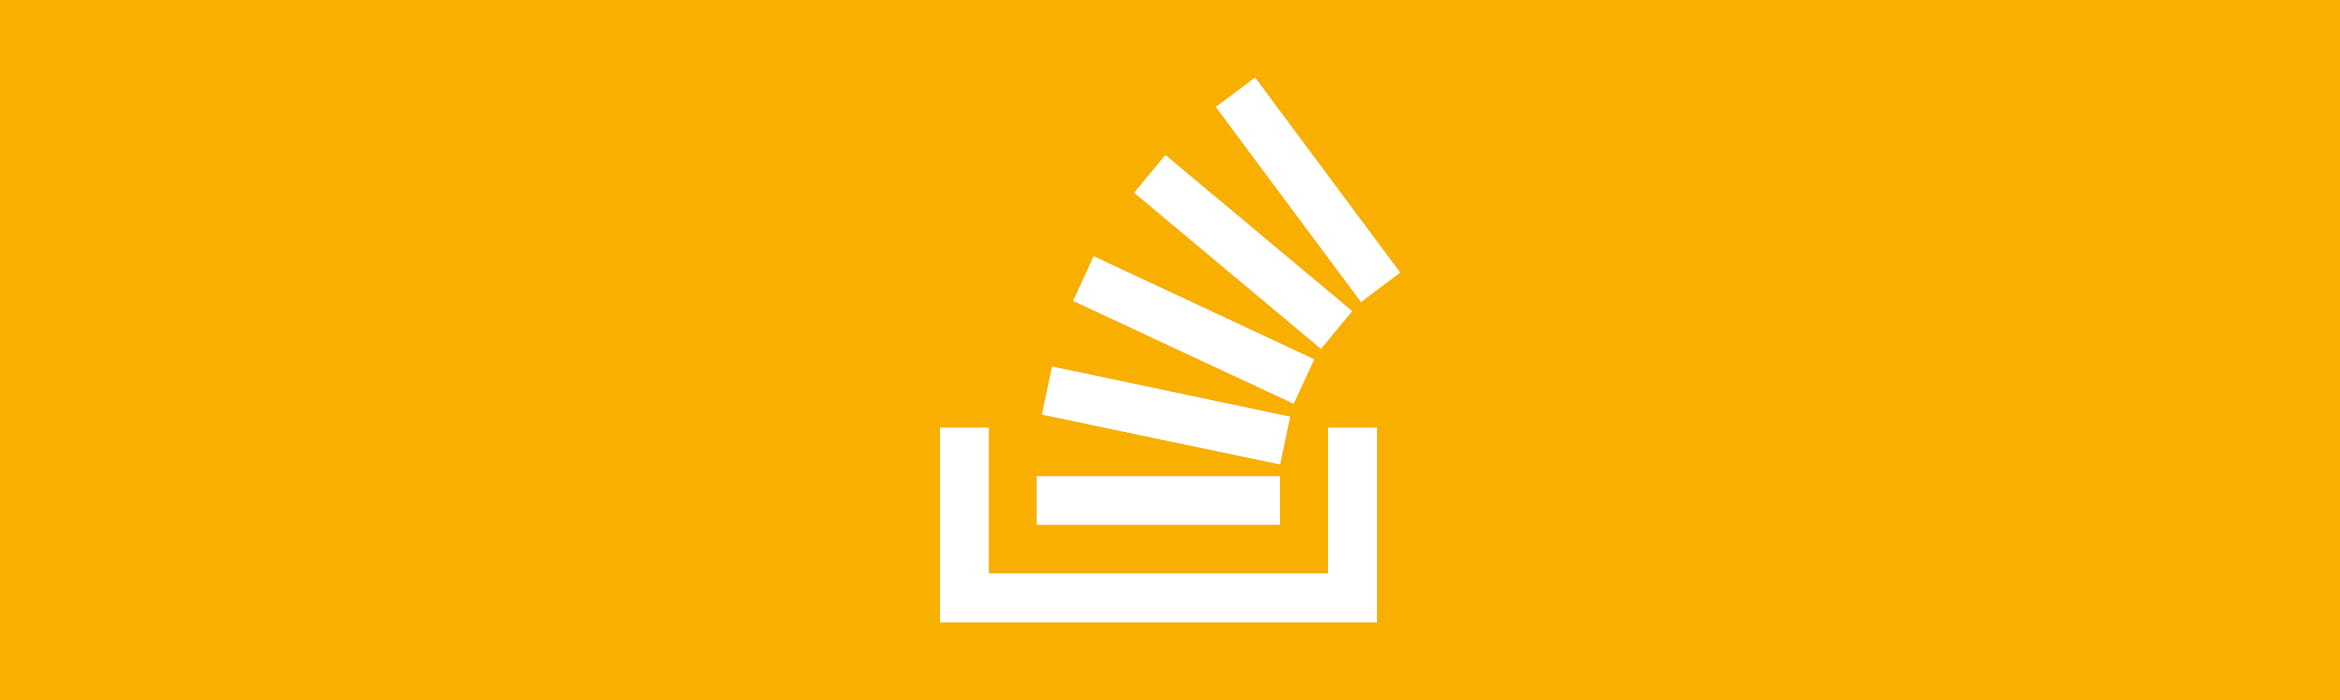 white overflowing paper stacks icon against an amber background